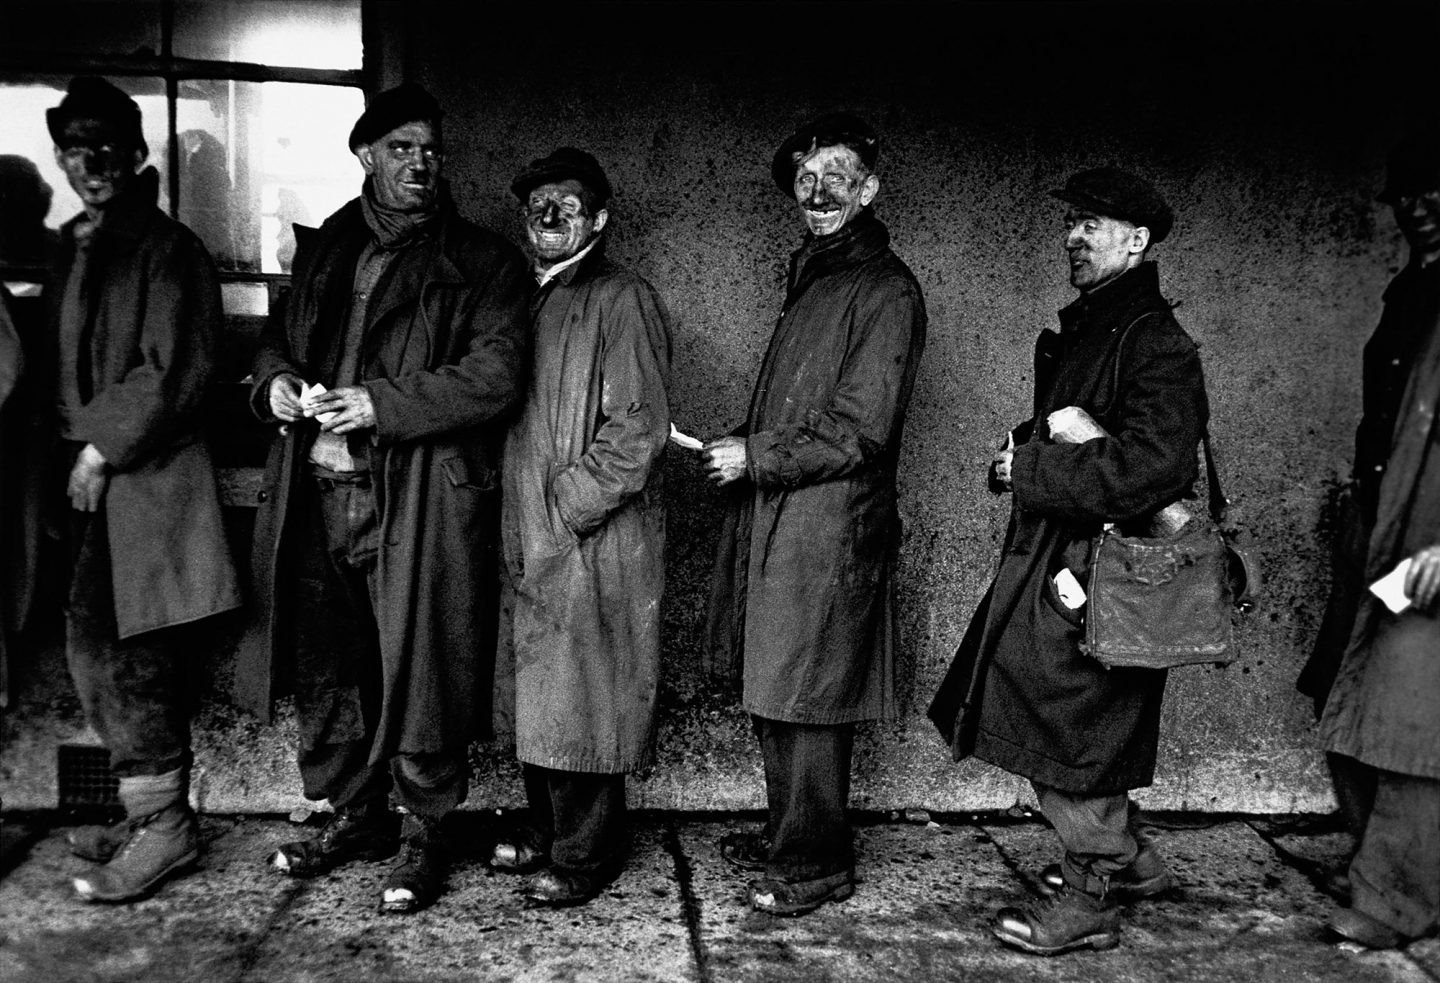 Photographer Robert Frank Is Dead At 94, His Work Will Live On